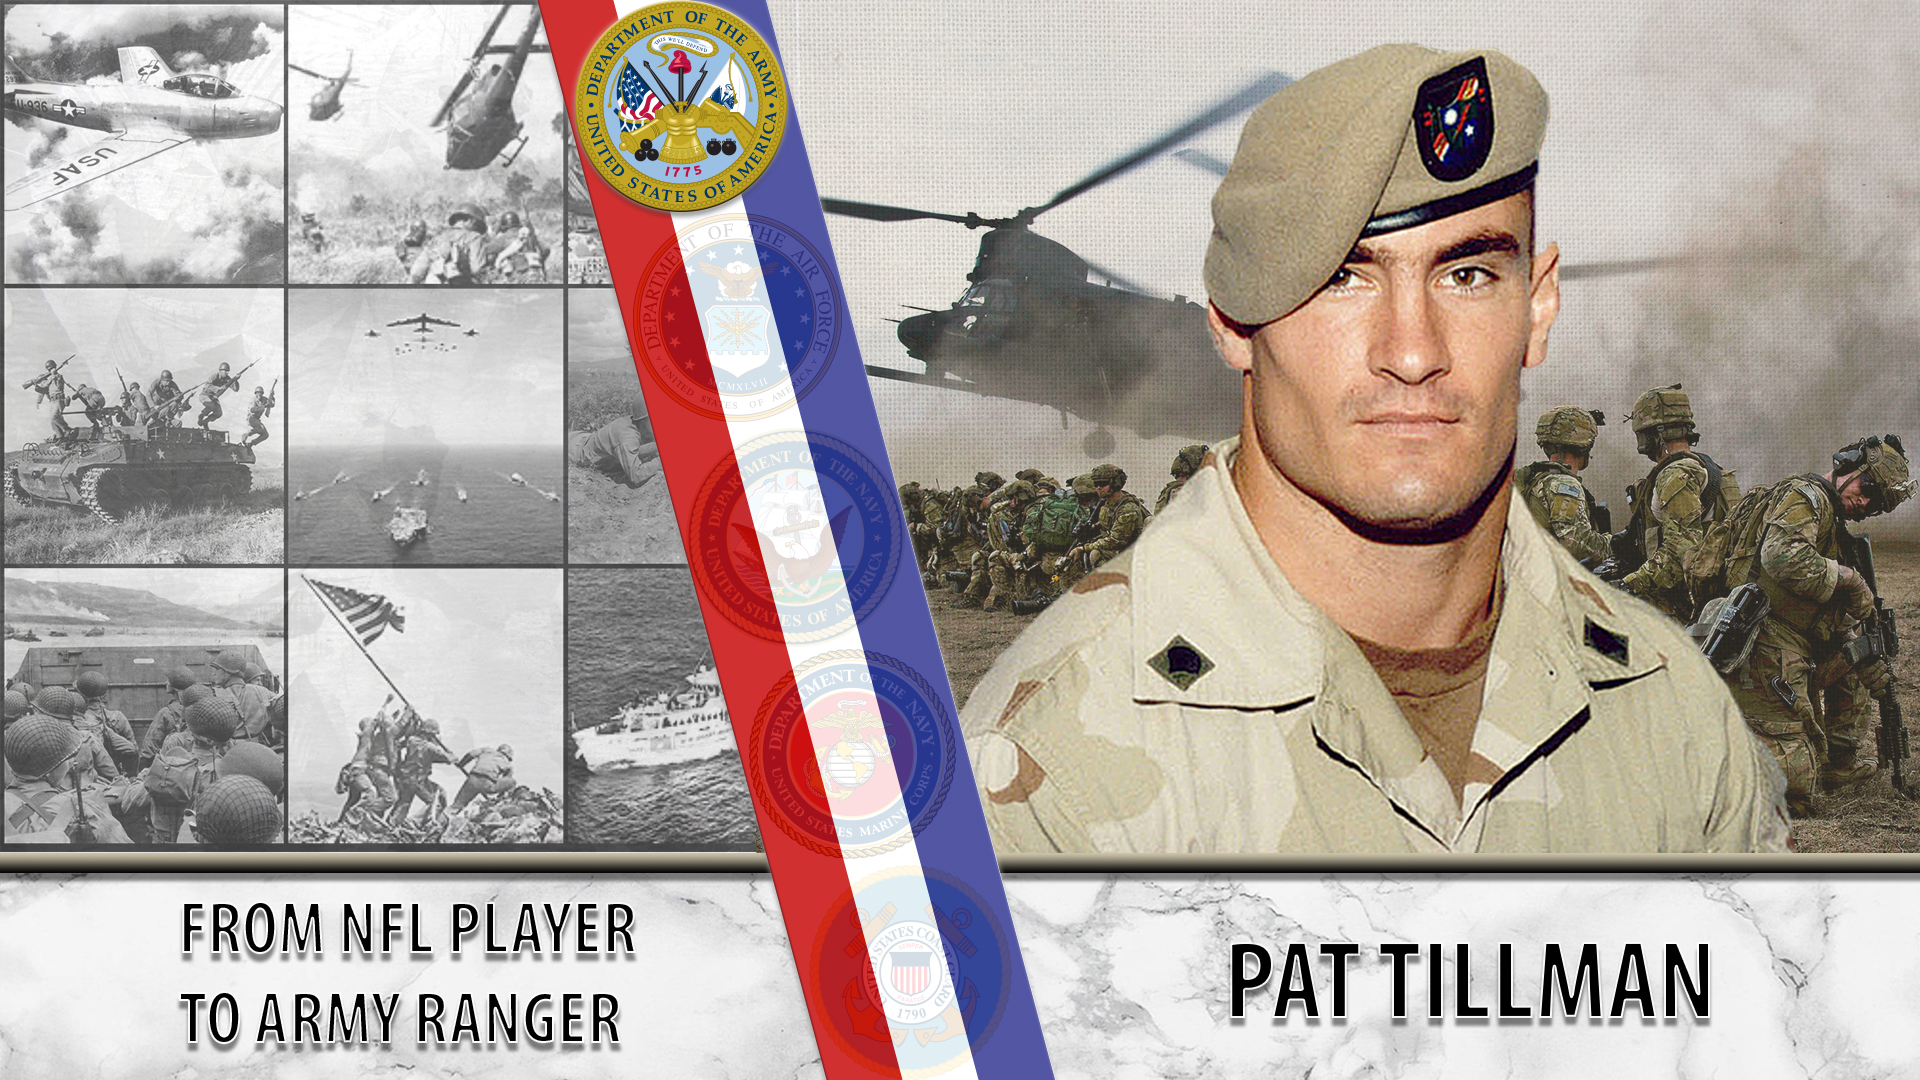 Pat Tillman left the NFL for the Army after 9/11.